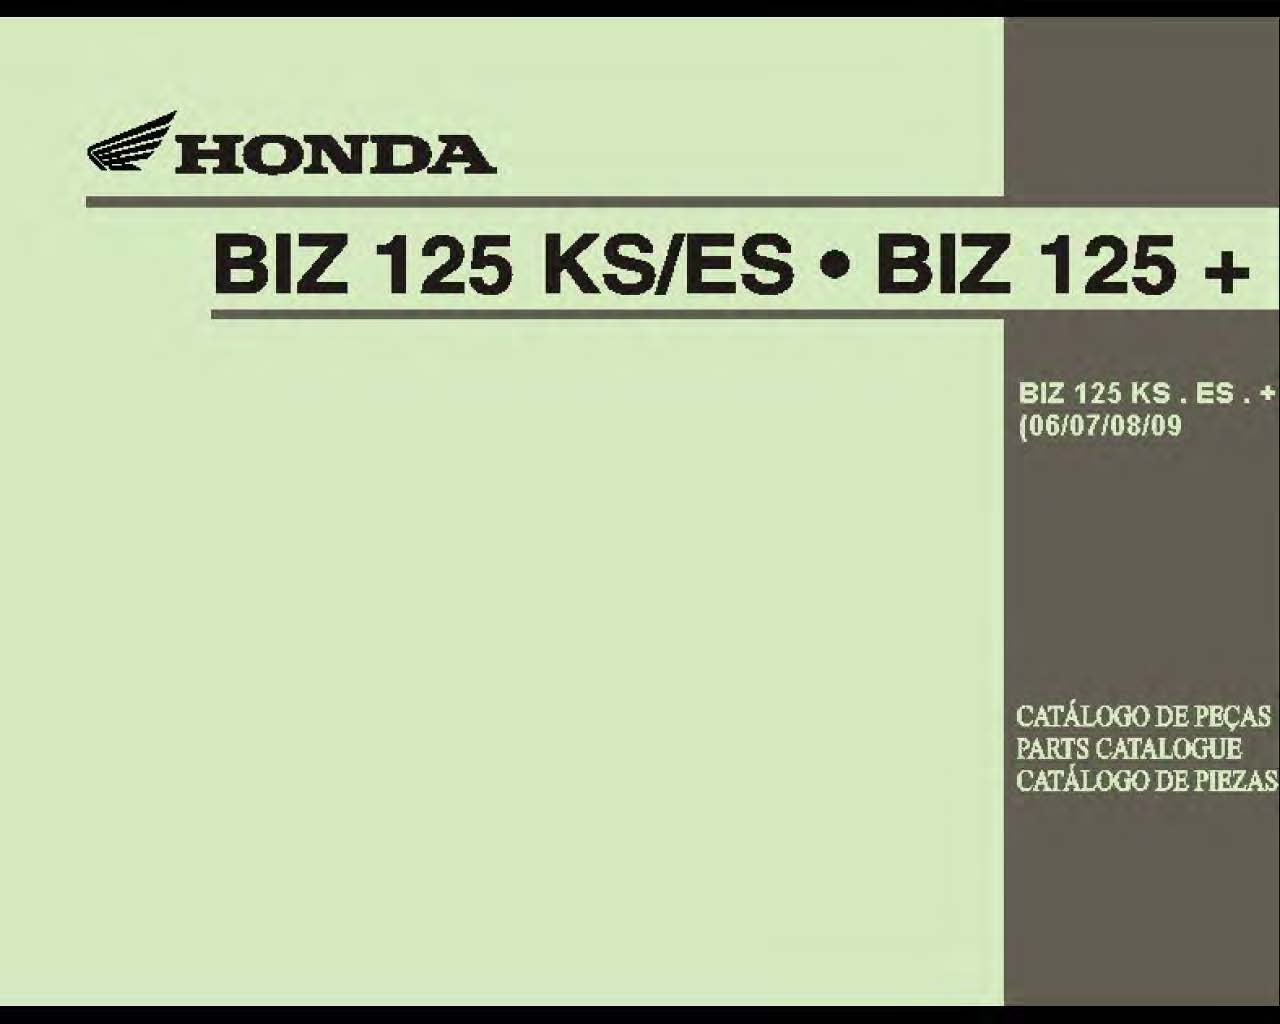 Parts list for Honda BIZ125 + (2006-2009) (Multilingual)